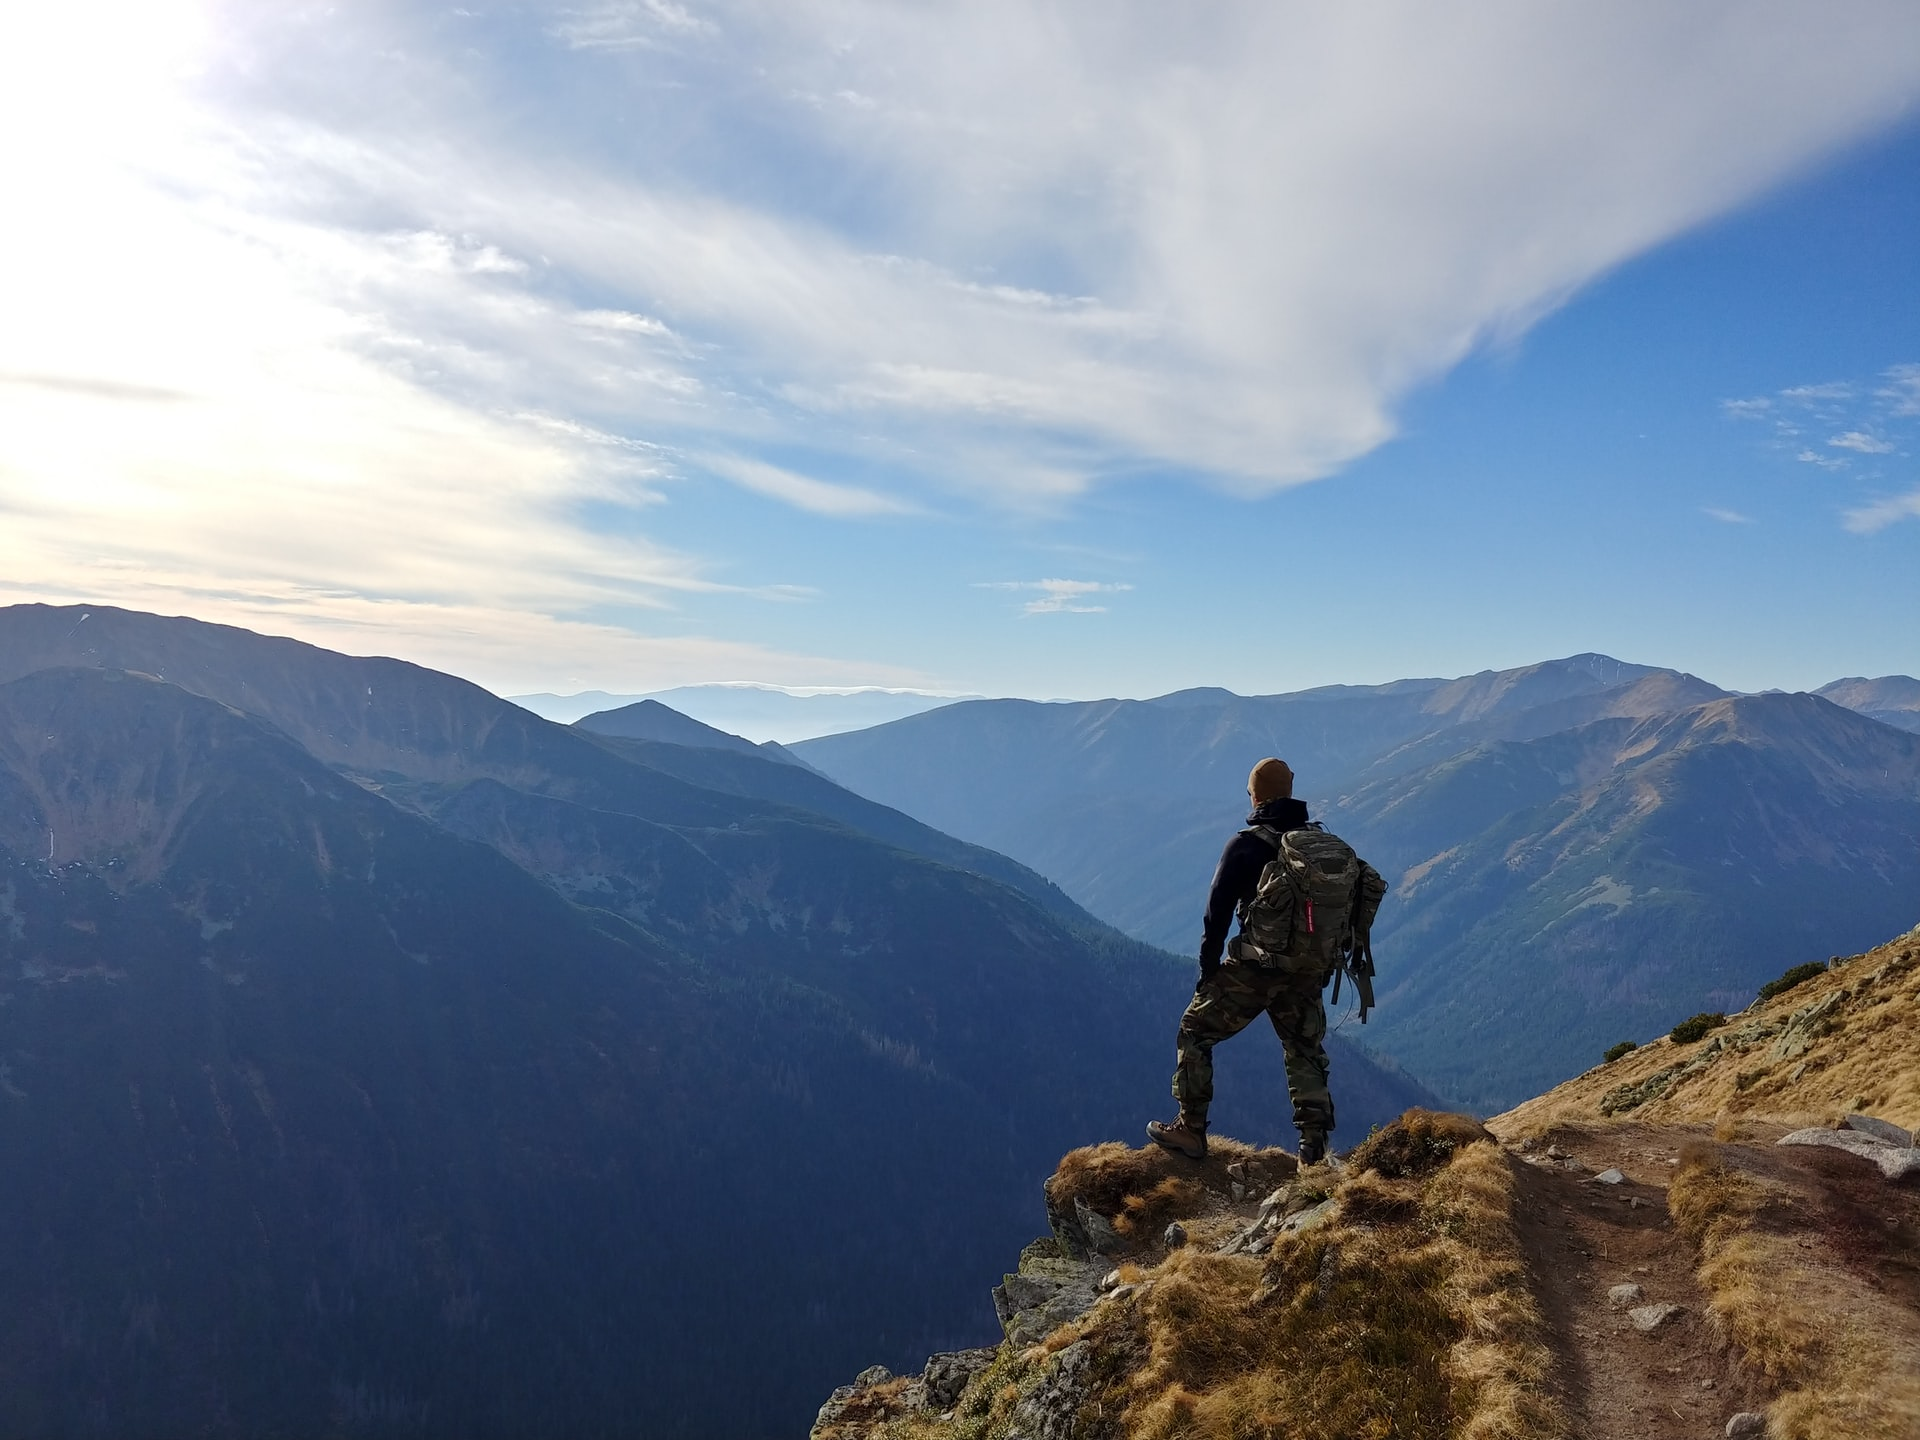 person on a quest overlooking mountains